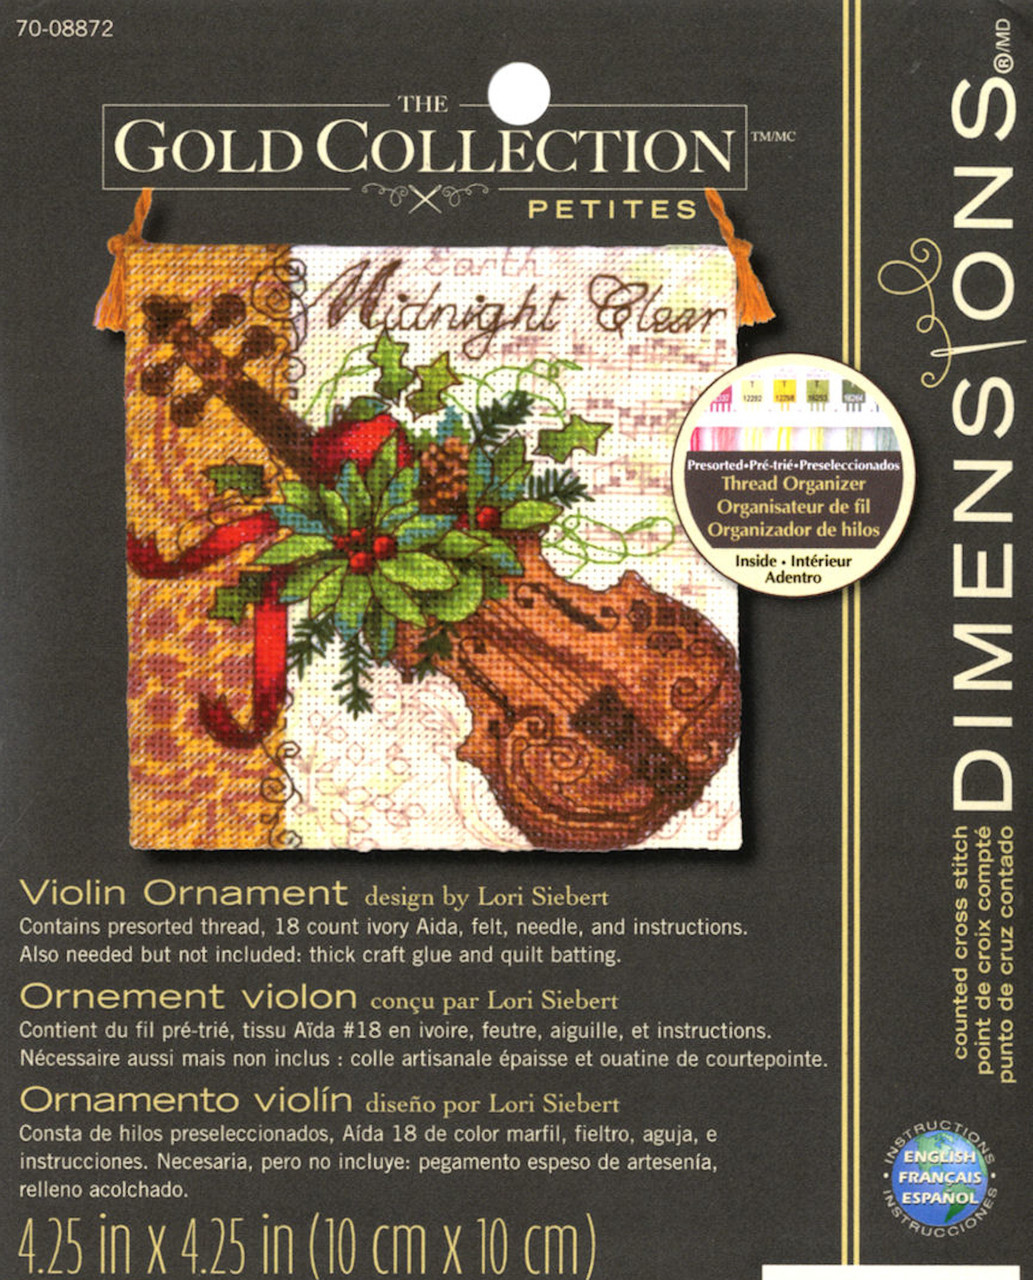 Gold Collection Petites - Violin Ornament